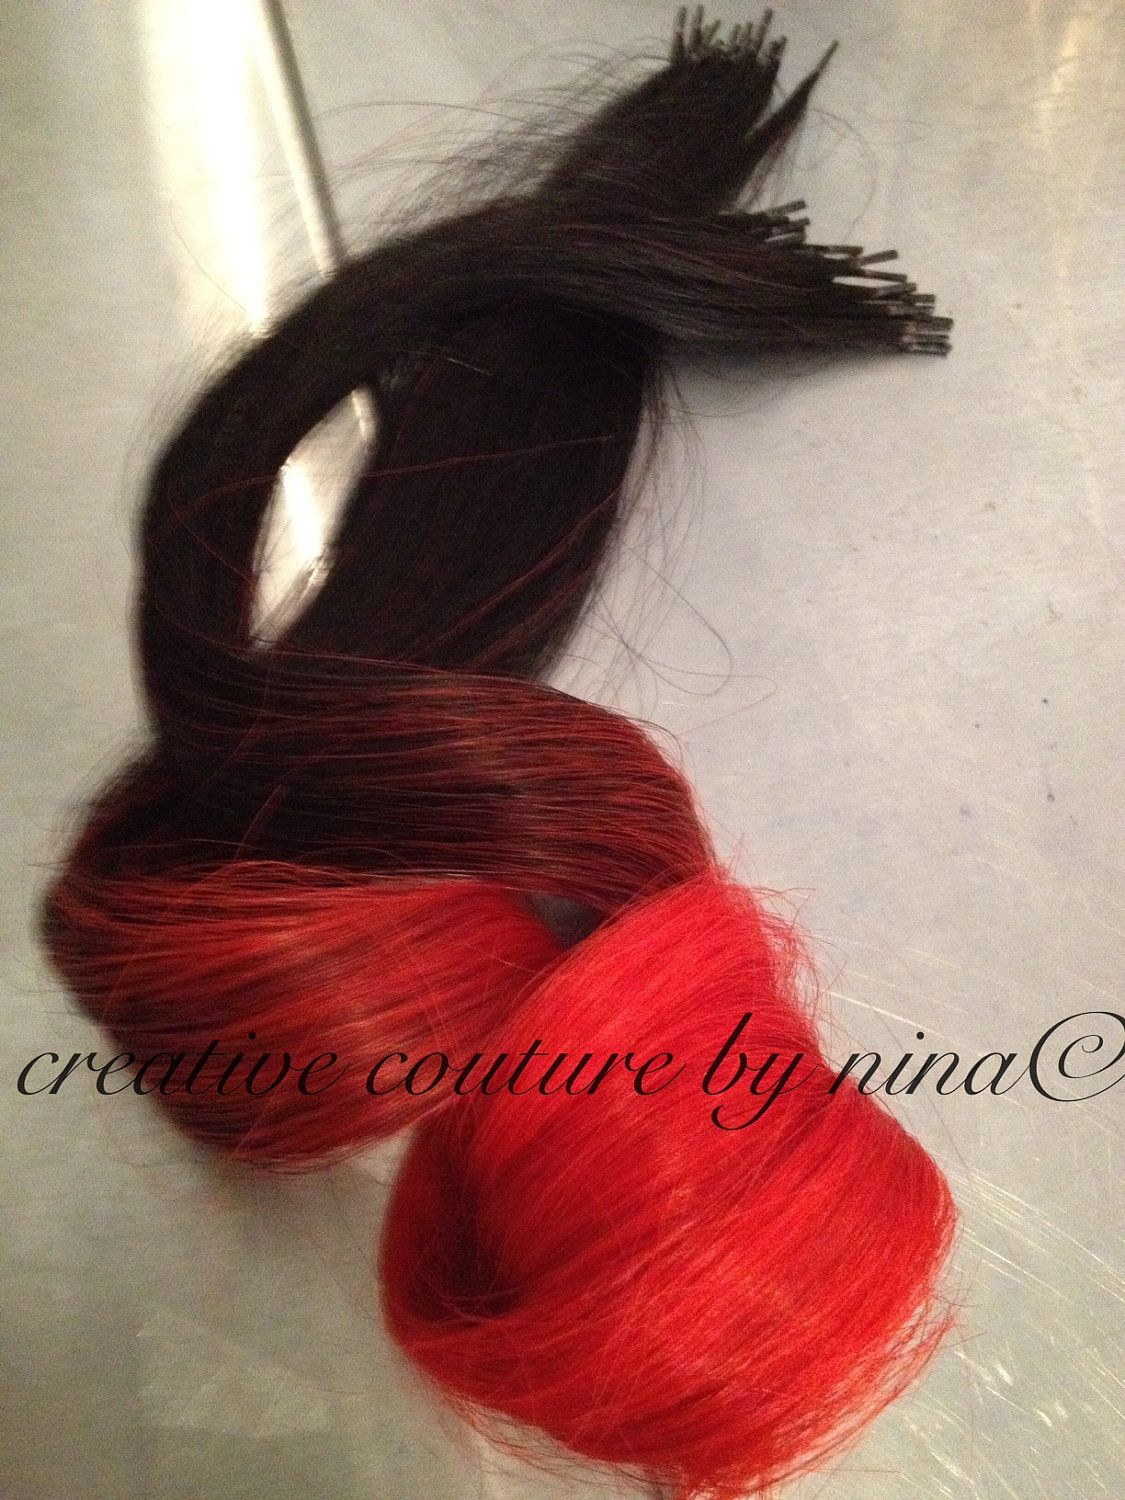 18 red hair black hair ombre 20 pieces dip dye i tip human black hair ombre hair black hair long hair cold fusion ship dip dye human hair extensions studio etsy pmusecretfo Images